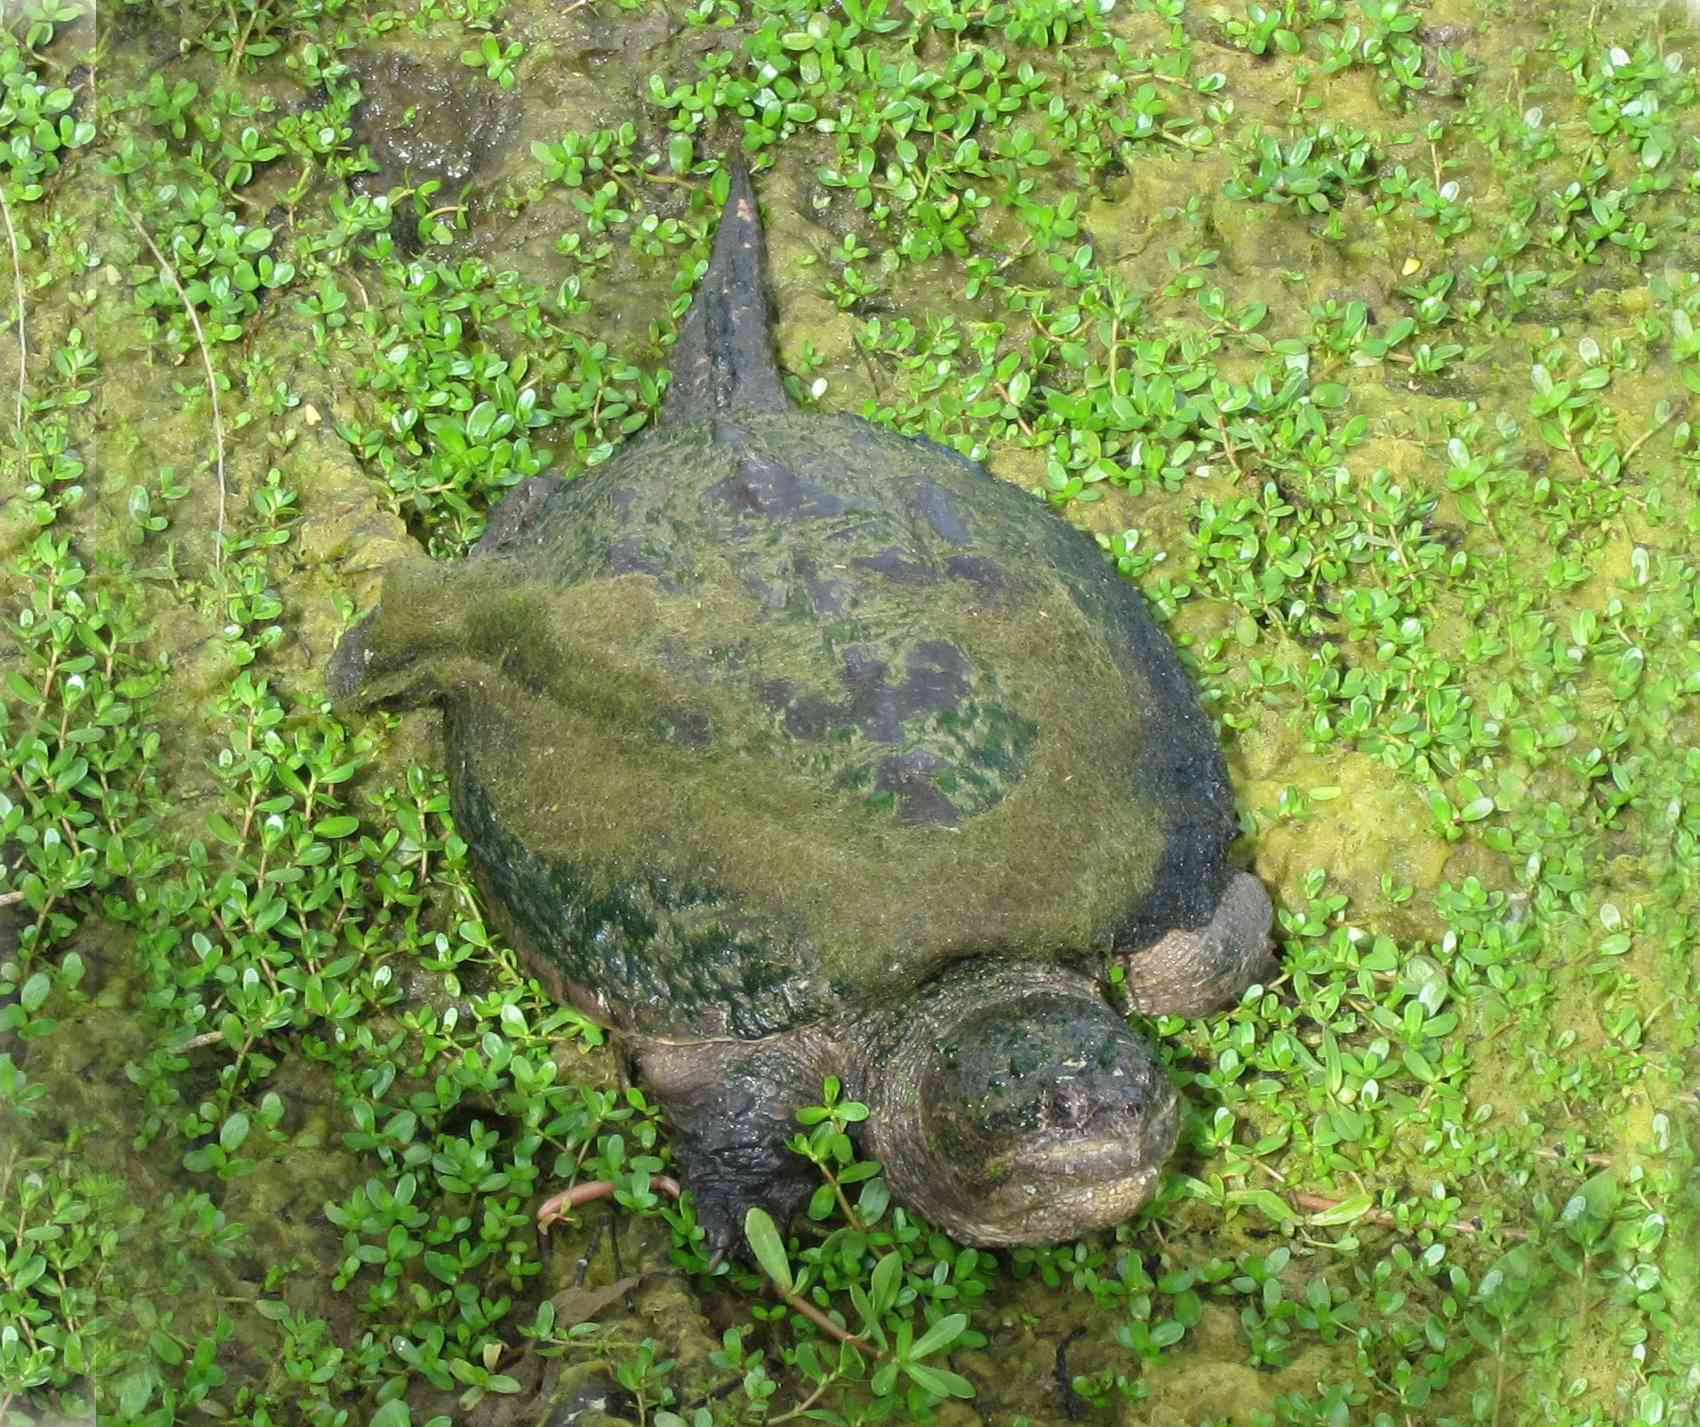 Turtle at Seacenter